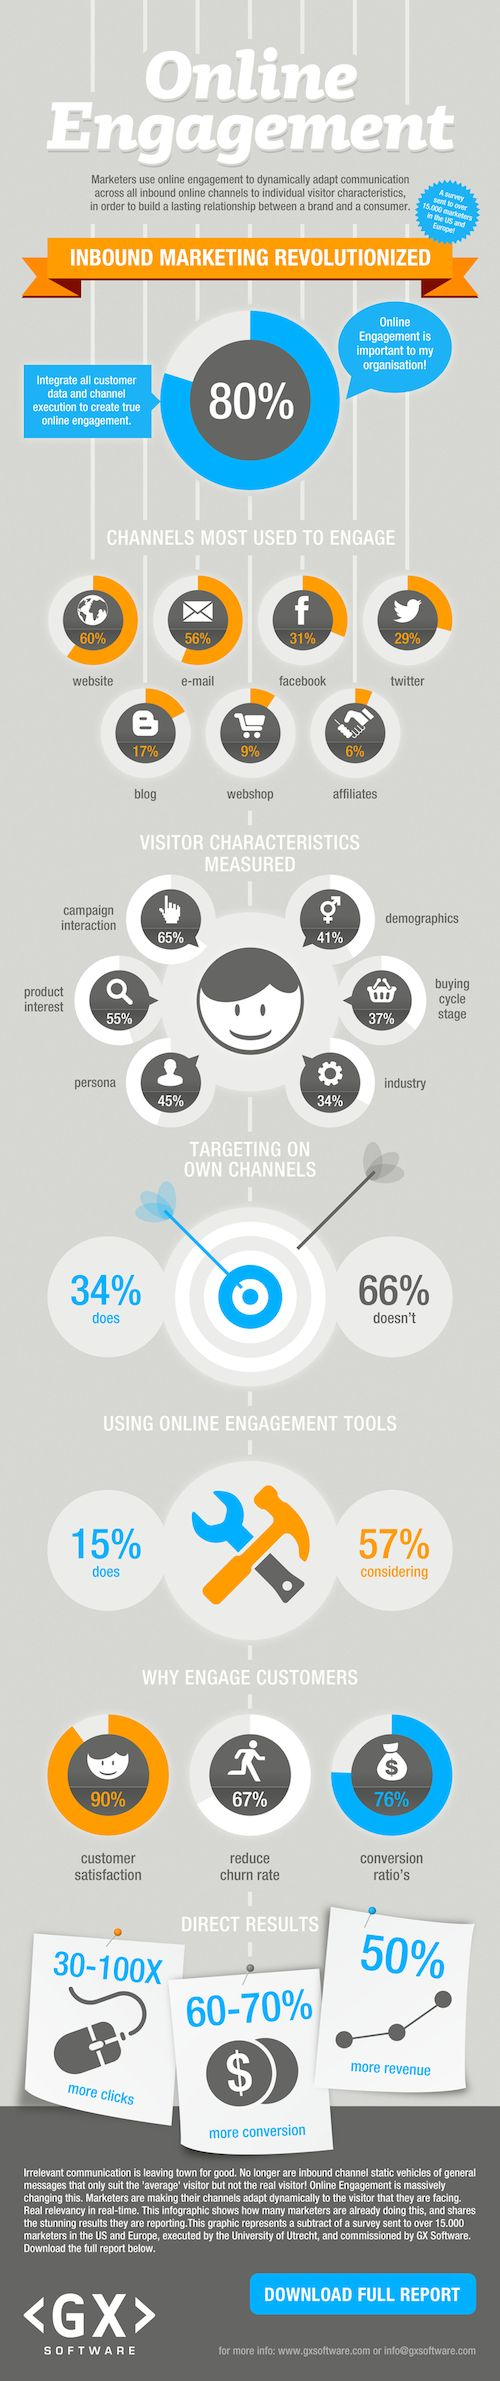 Infographic online engagement anno 2012